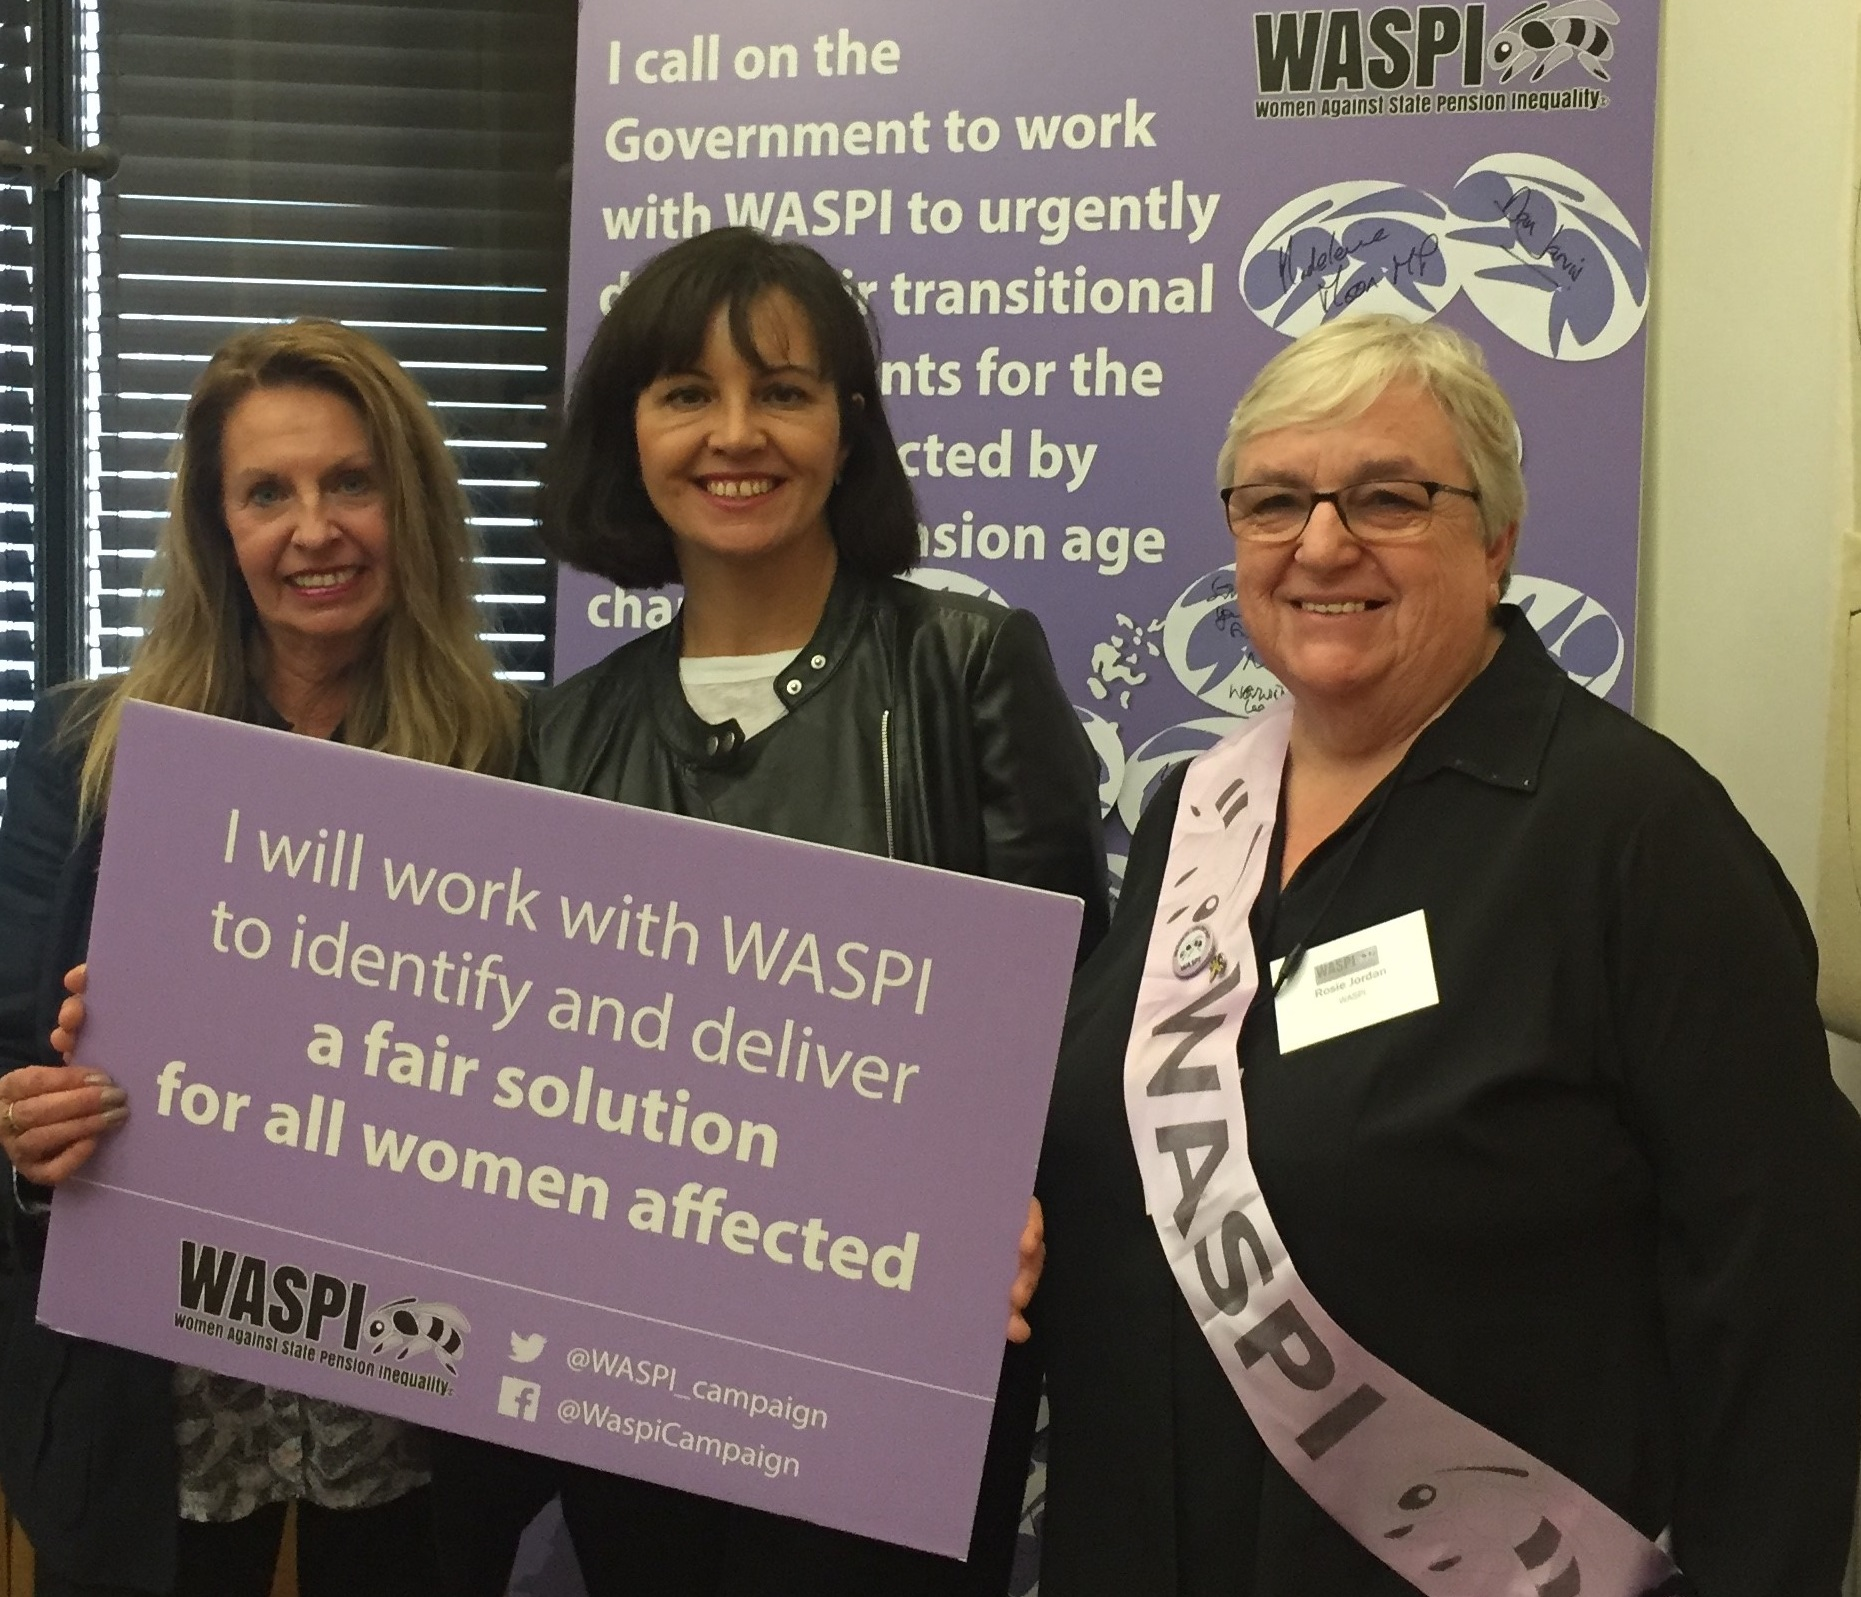 WASPI_pledge_1019_cropped.jpg